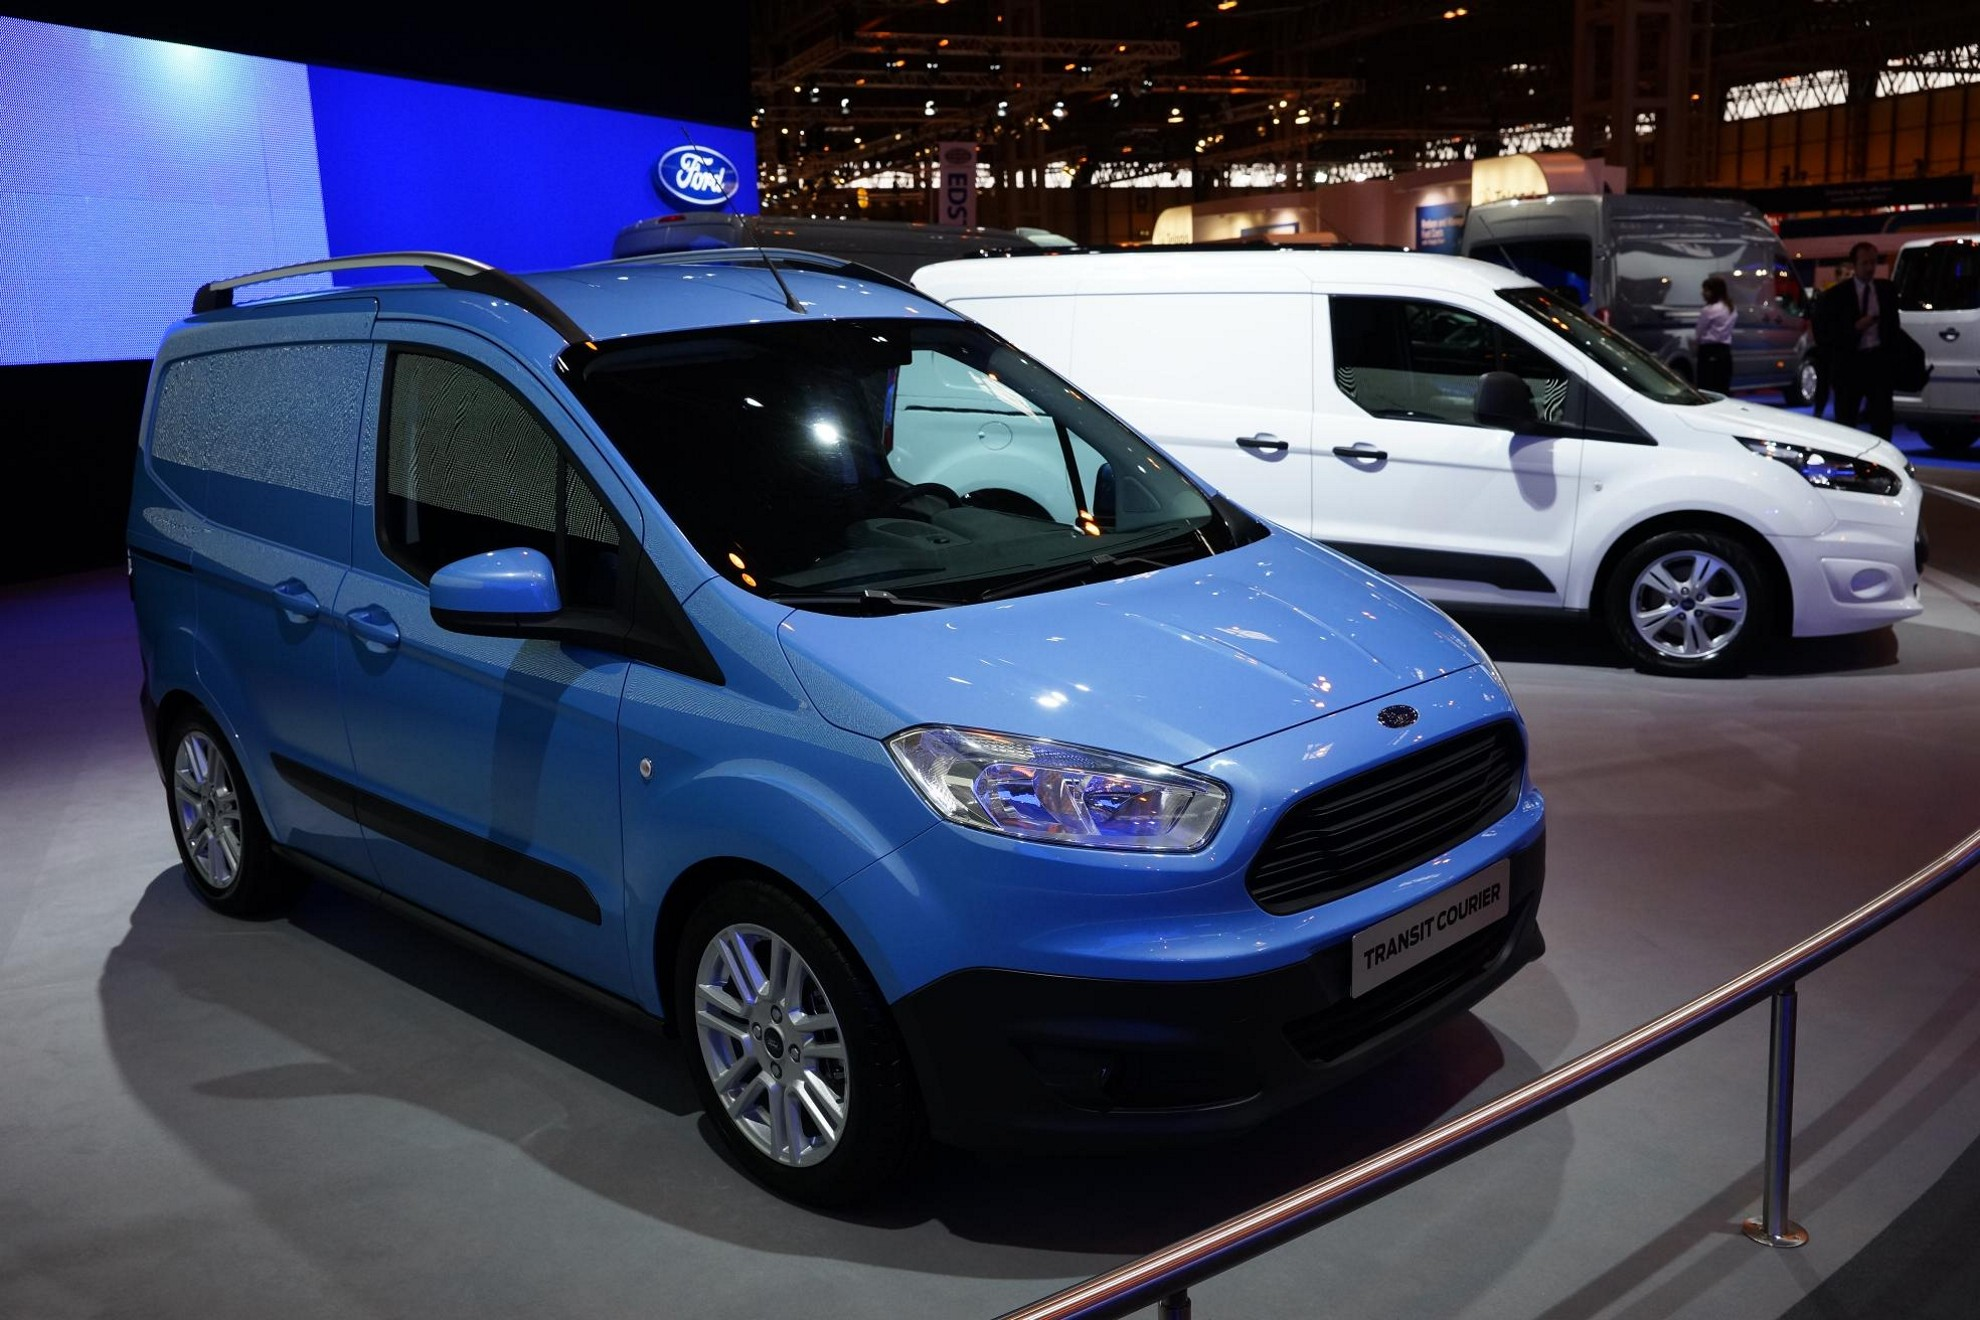 2014 ford transit 2013 detroit auto show motor trend autos post. Black Bedroom Furniture Sets. Home Design Ideas